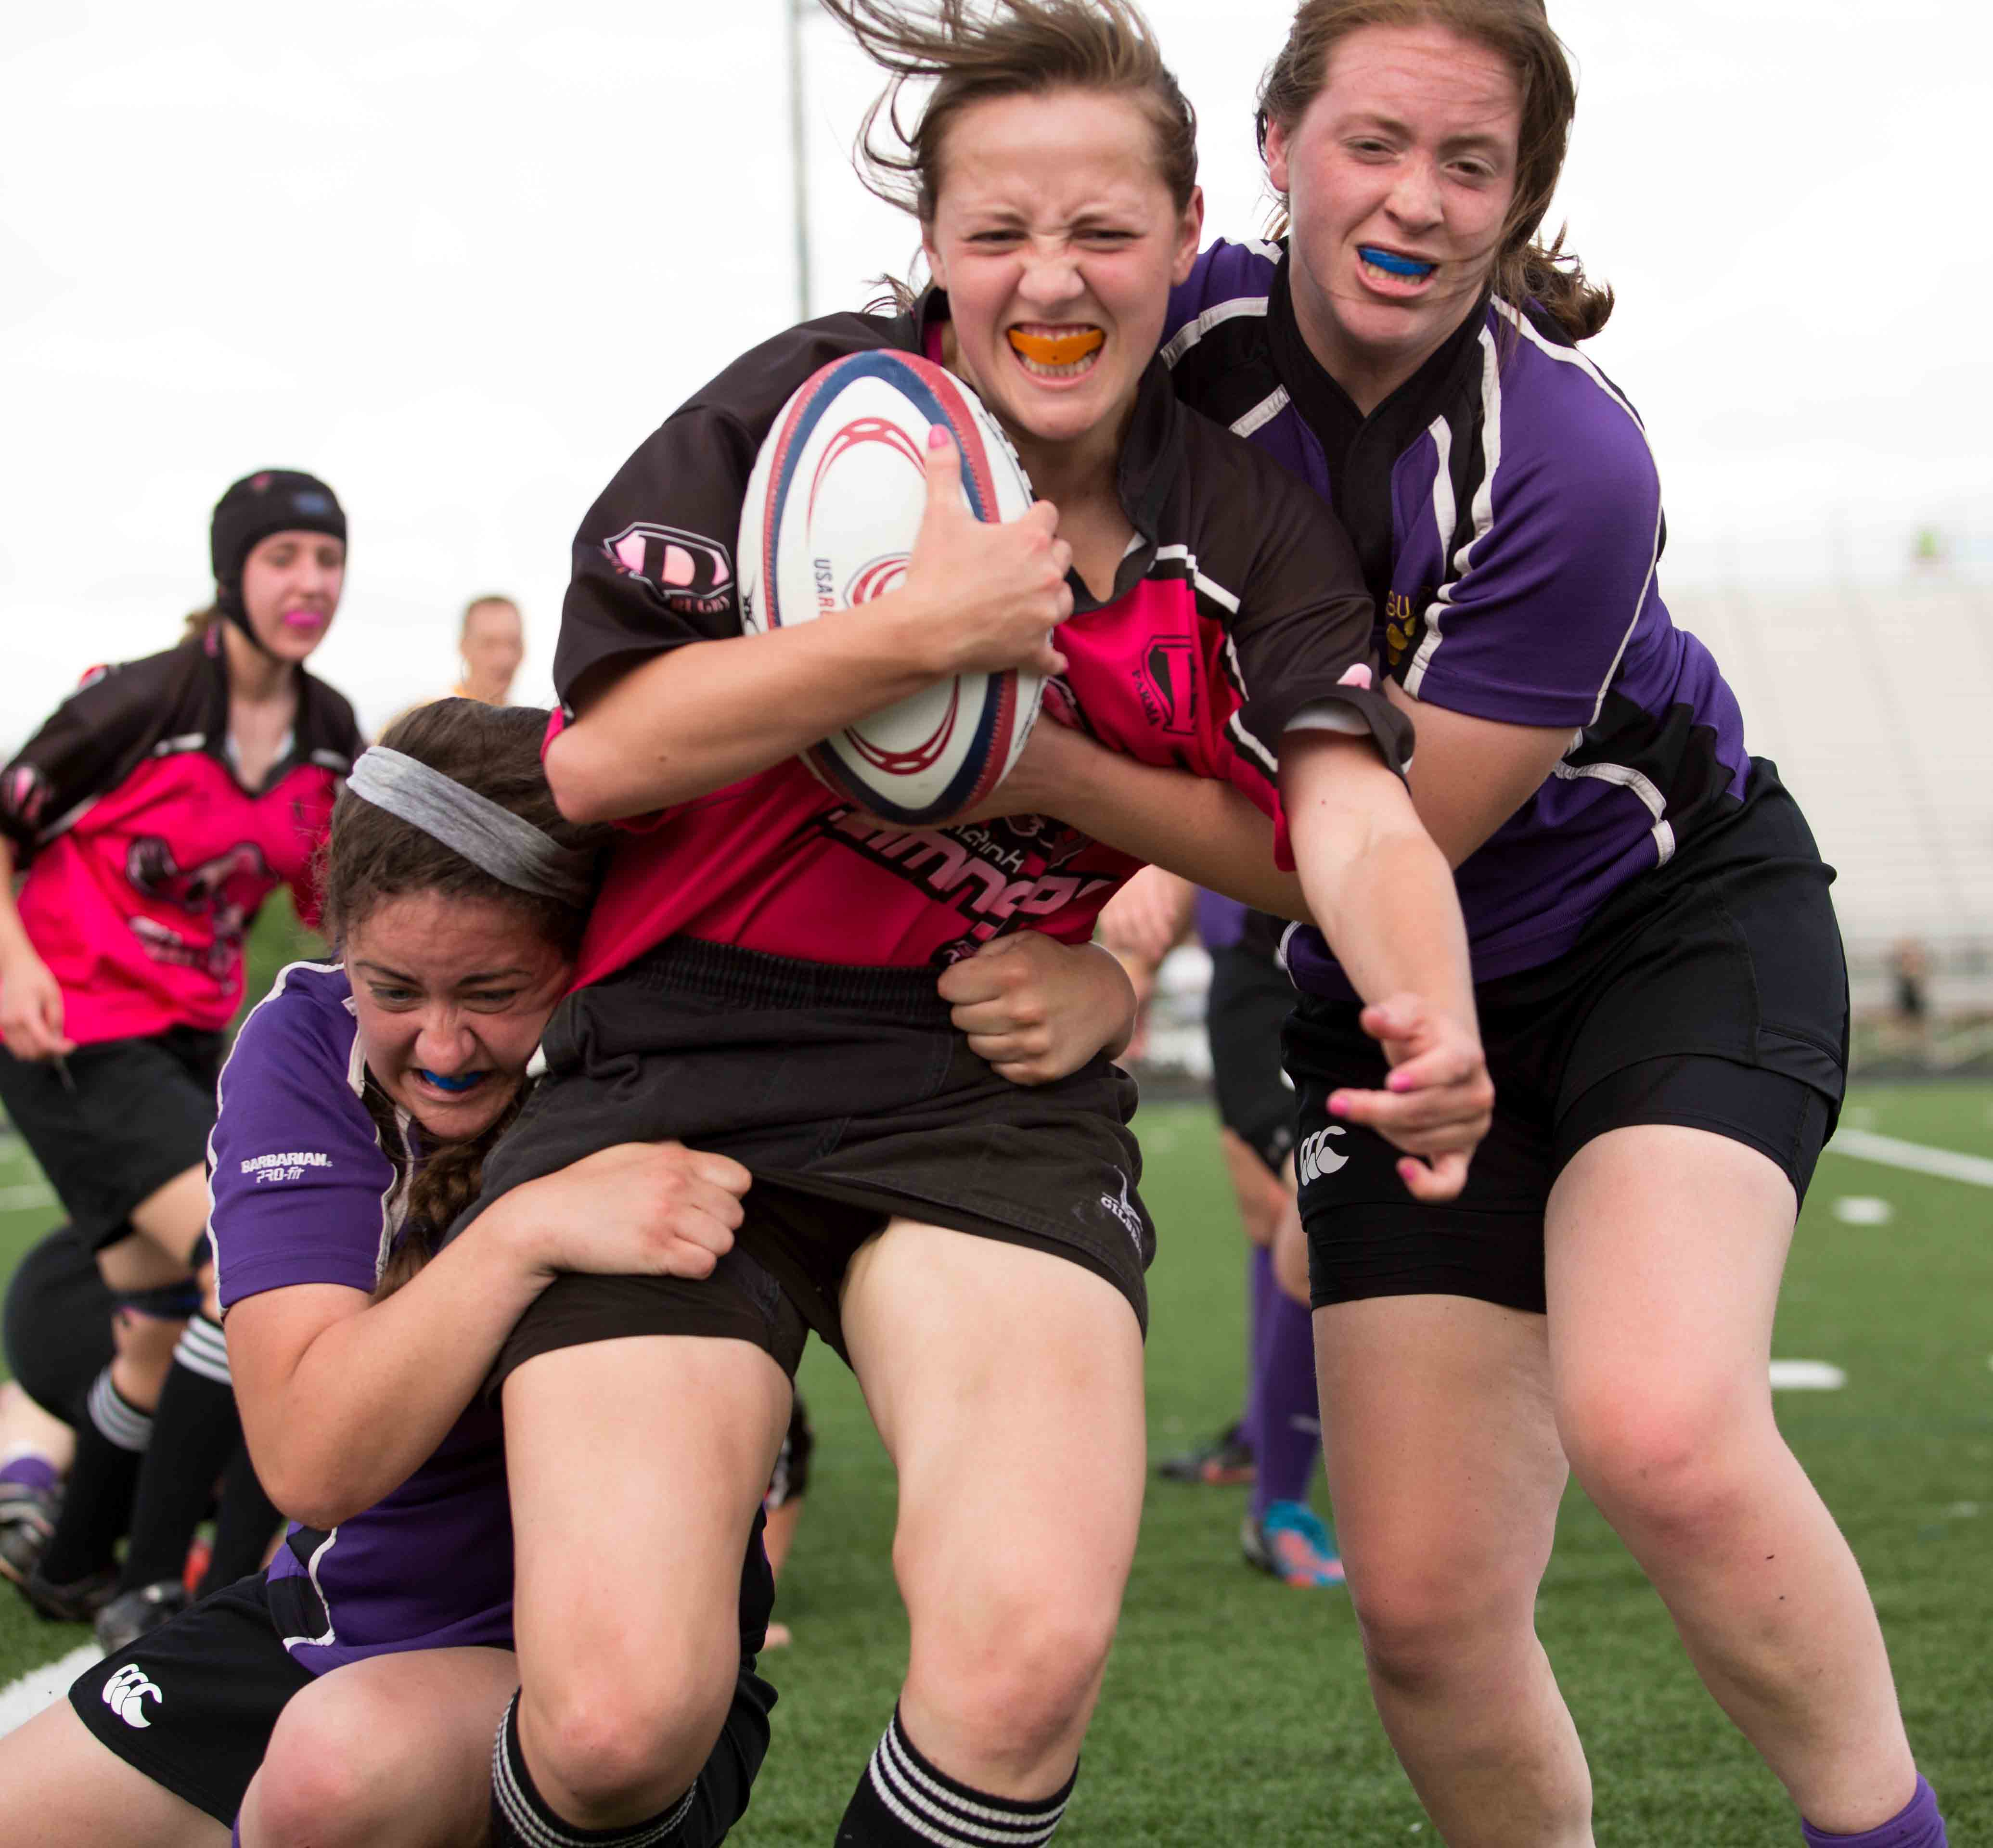 A member of the Parma High School women's rugby team, the Flamingos, struggles to escape the grasp of two St. Joseph Academy Jaguar opponents. Shaker's women's rugby team will compete against St. Joseph in Division II play.